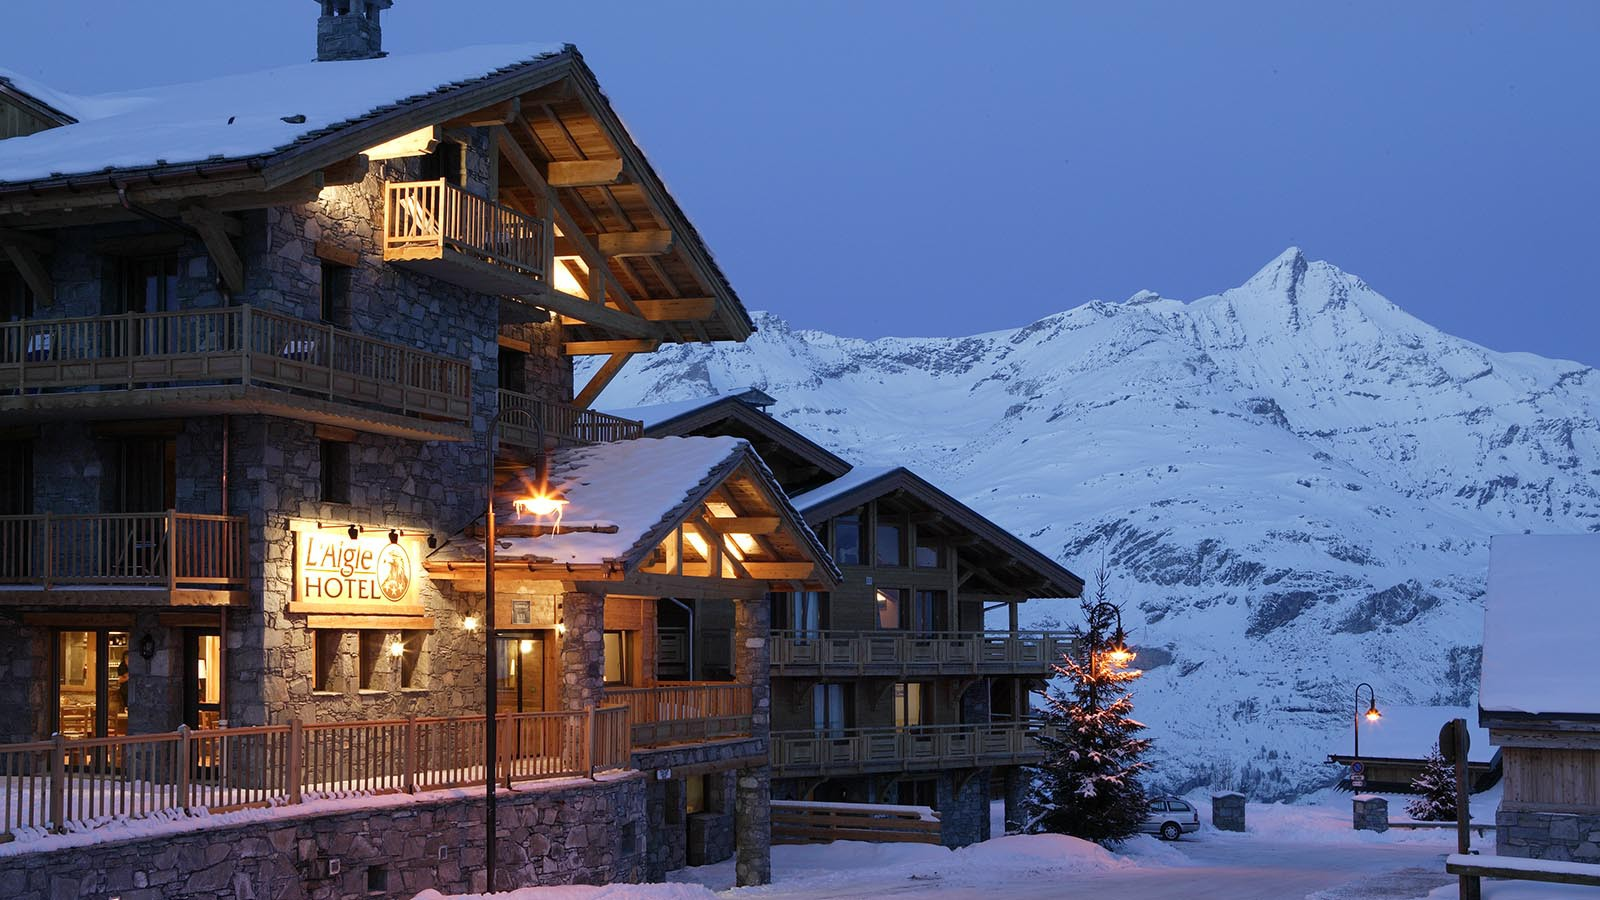 Night Exterior of Ski Lodge Aigle, Tignes, France